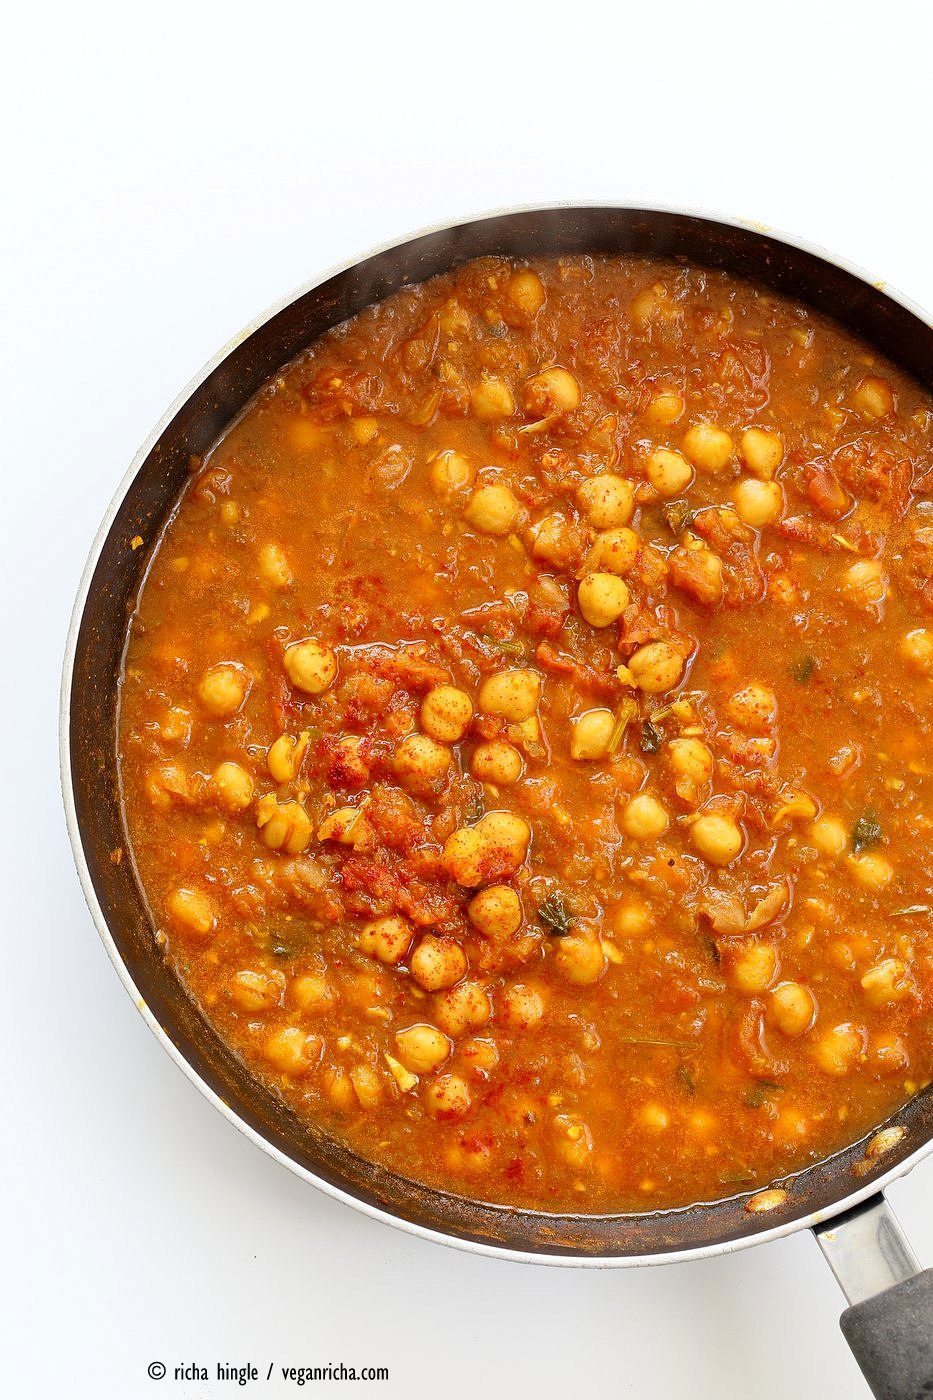 vegan easy chickpea curry recipe 2850 (2)